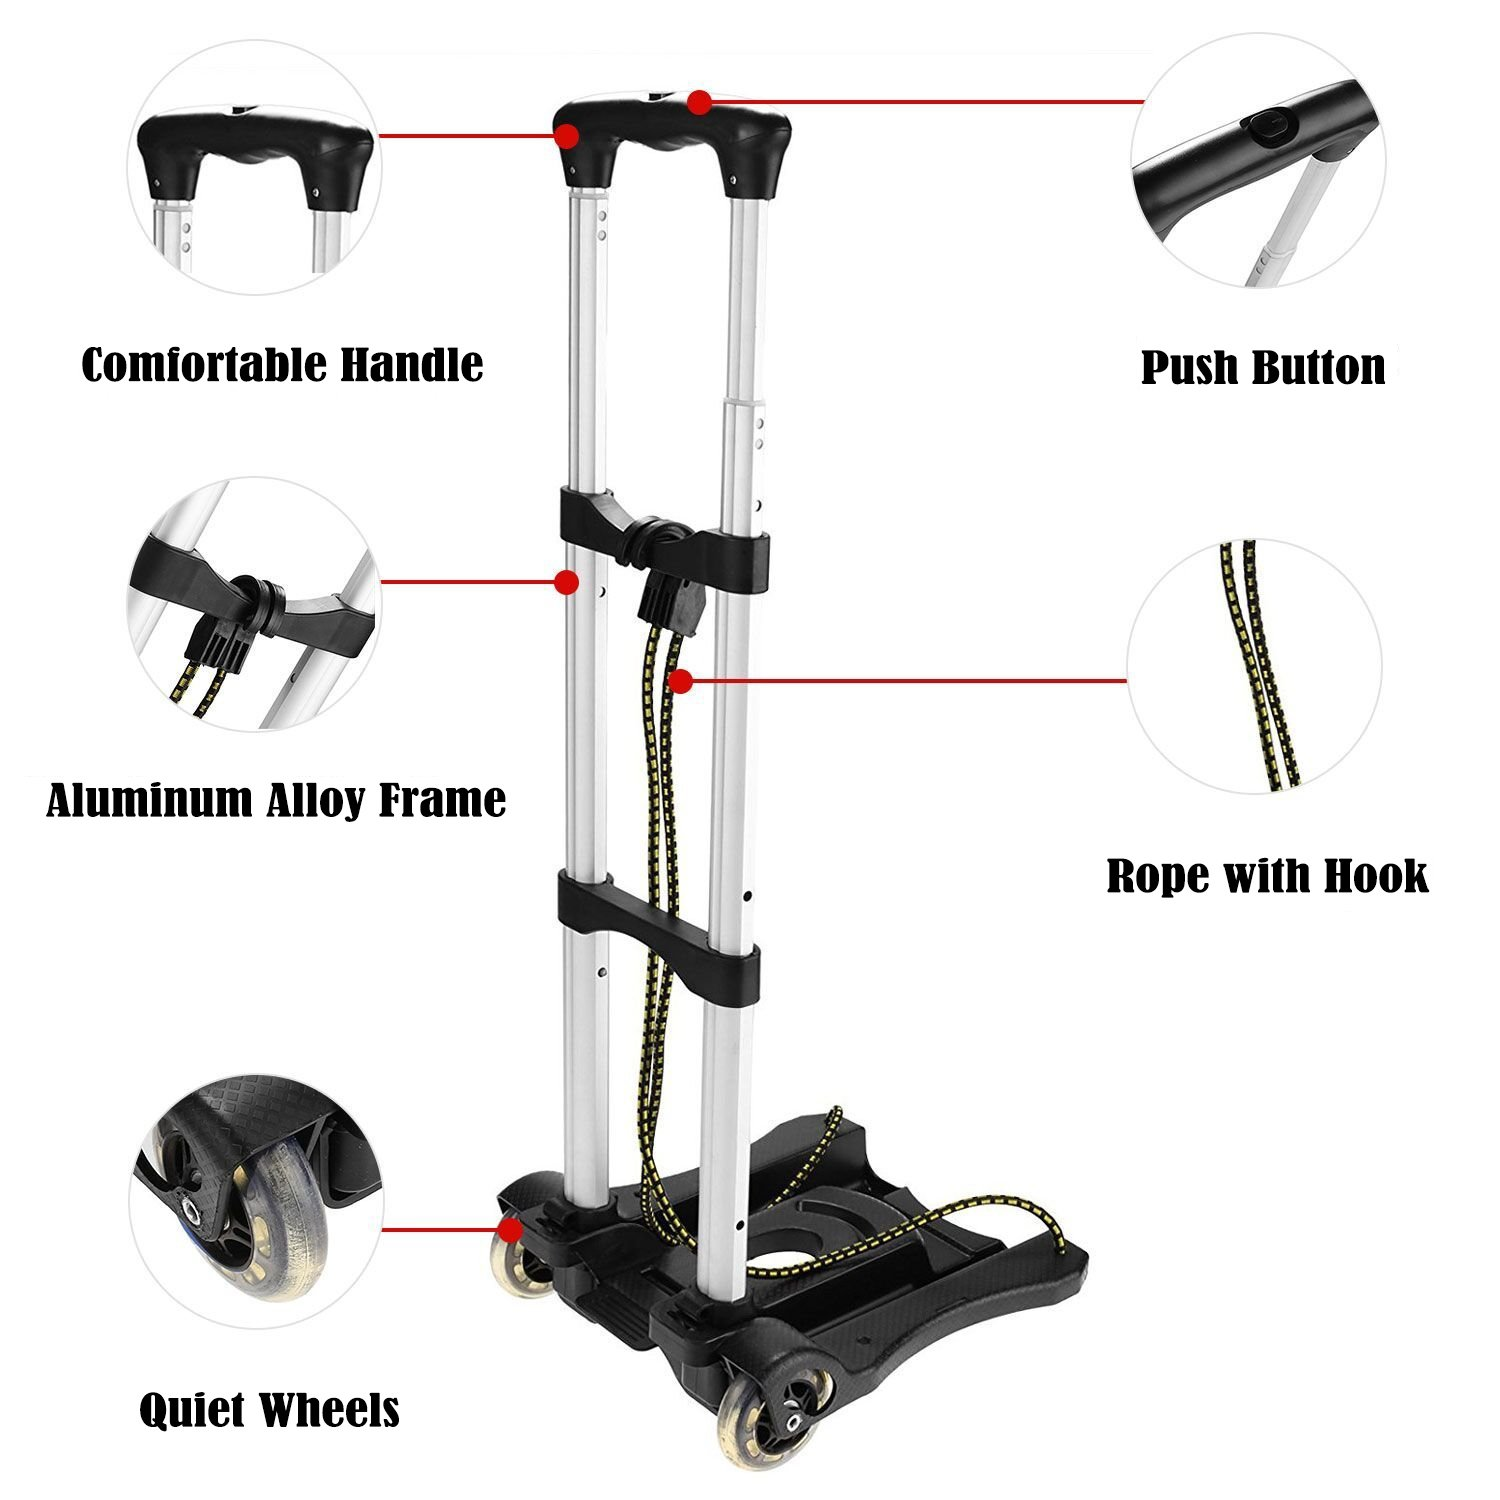 Anfan Folding Luggage Cart Portable Personal Moving Hand Truck 2 Wheels Foldable Platform Truck Shopping Cart - Support 80lbs Capacity by Anfan (Image #4)